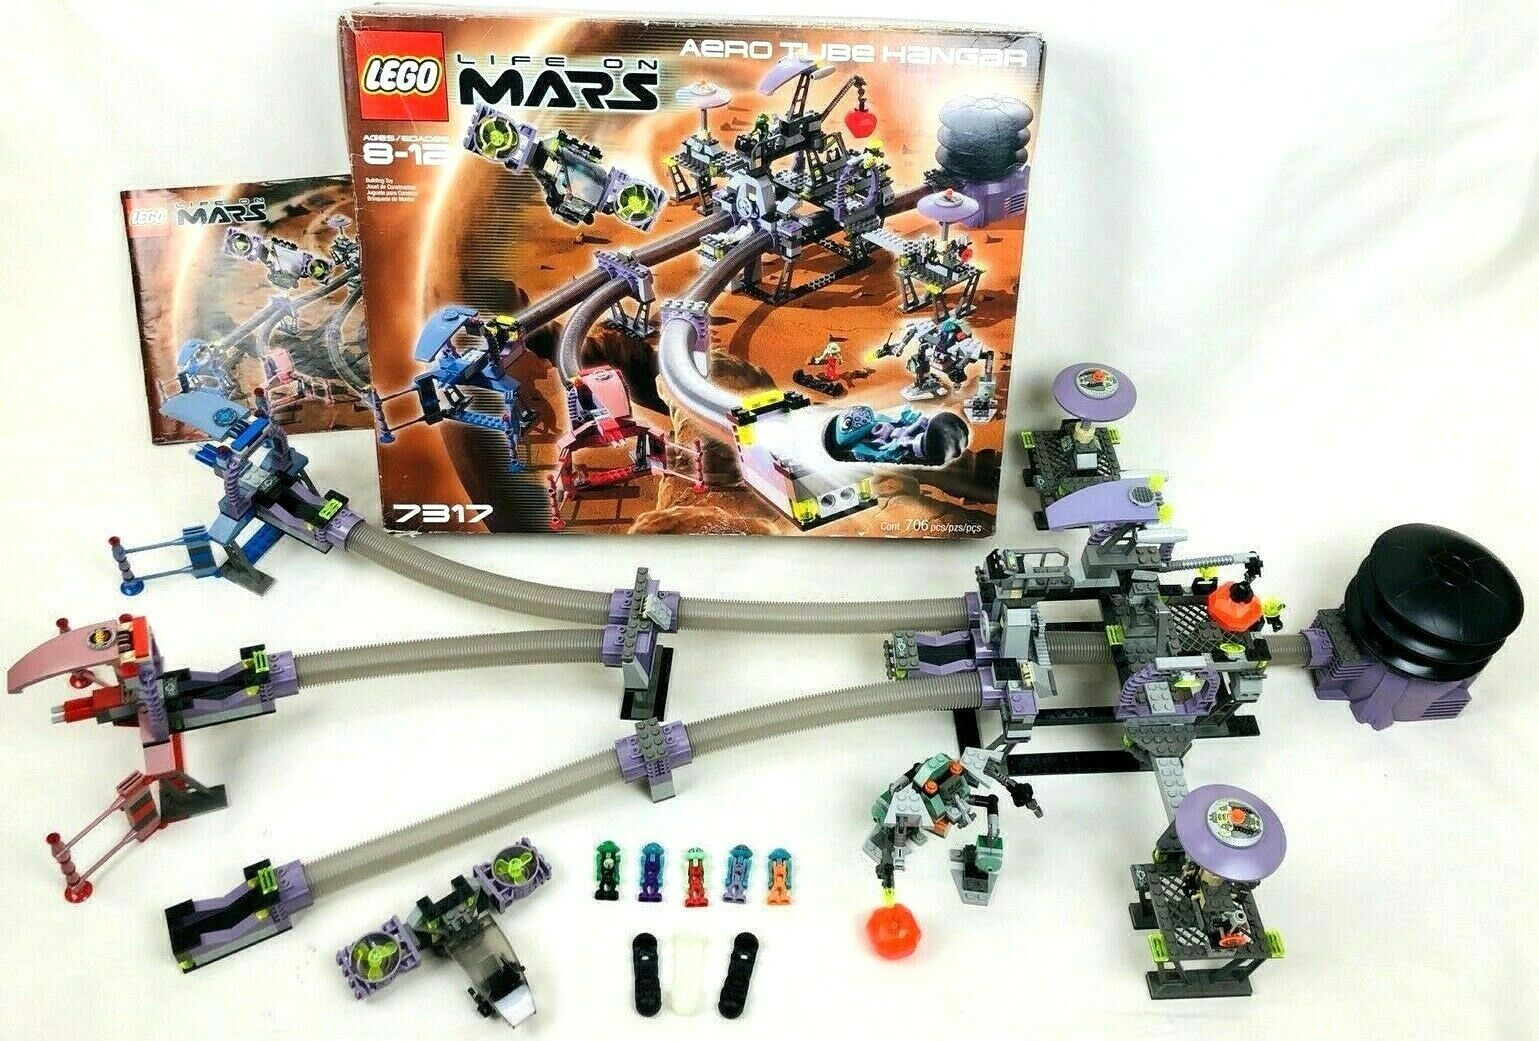 LEGO 7317 Space Life On Mars Aero Tube Hanger w  Box 100% Complete & Correct